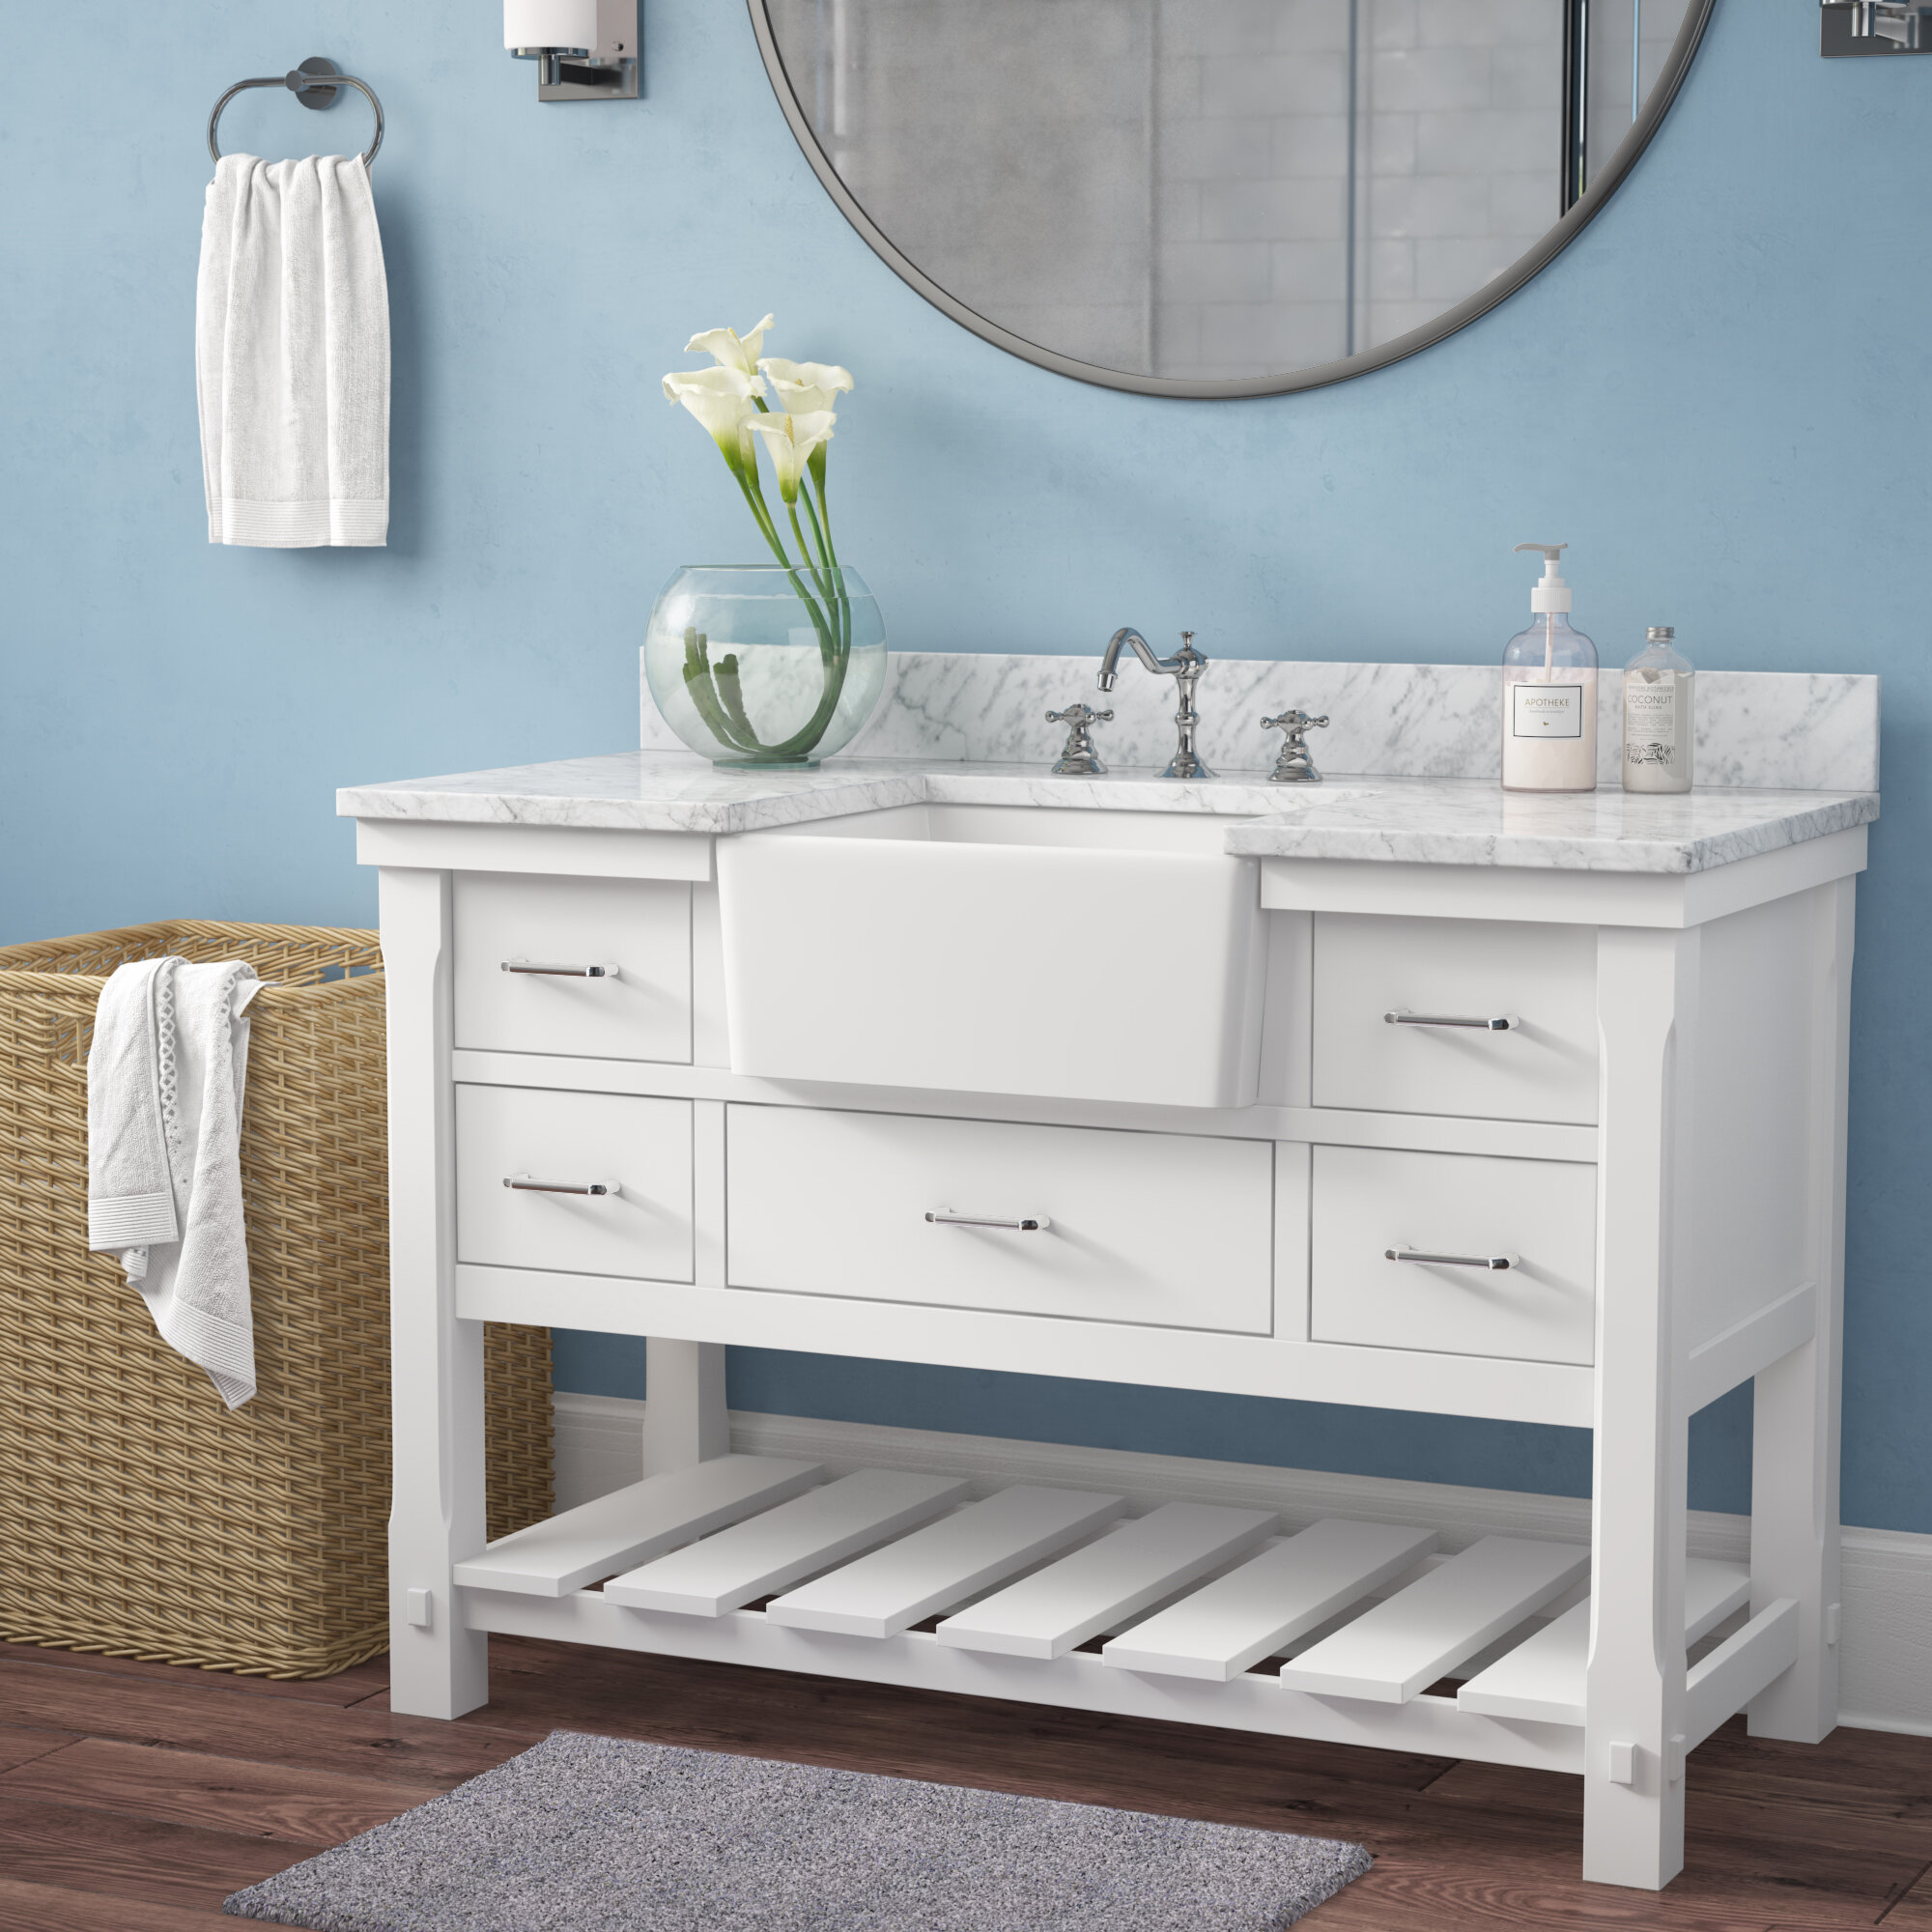 Breakwater Bay Altus 48 Single Bathroom Vanity Set Reviews Wayfair